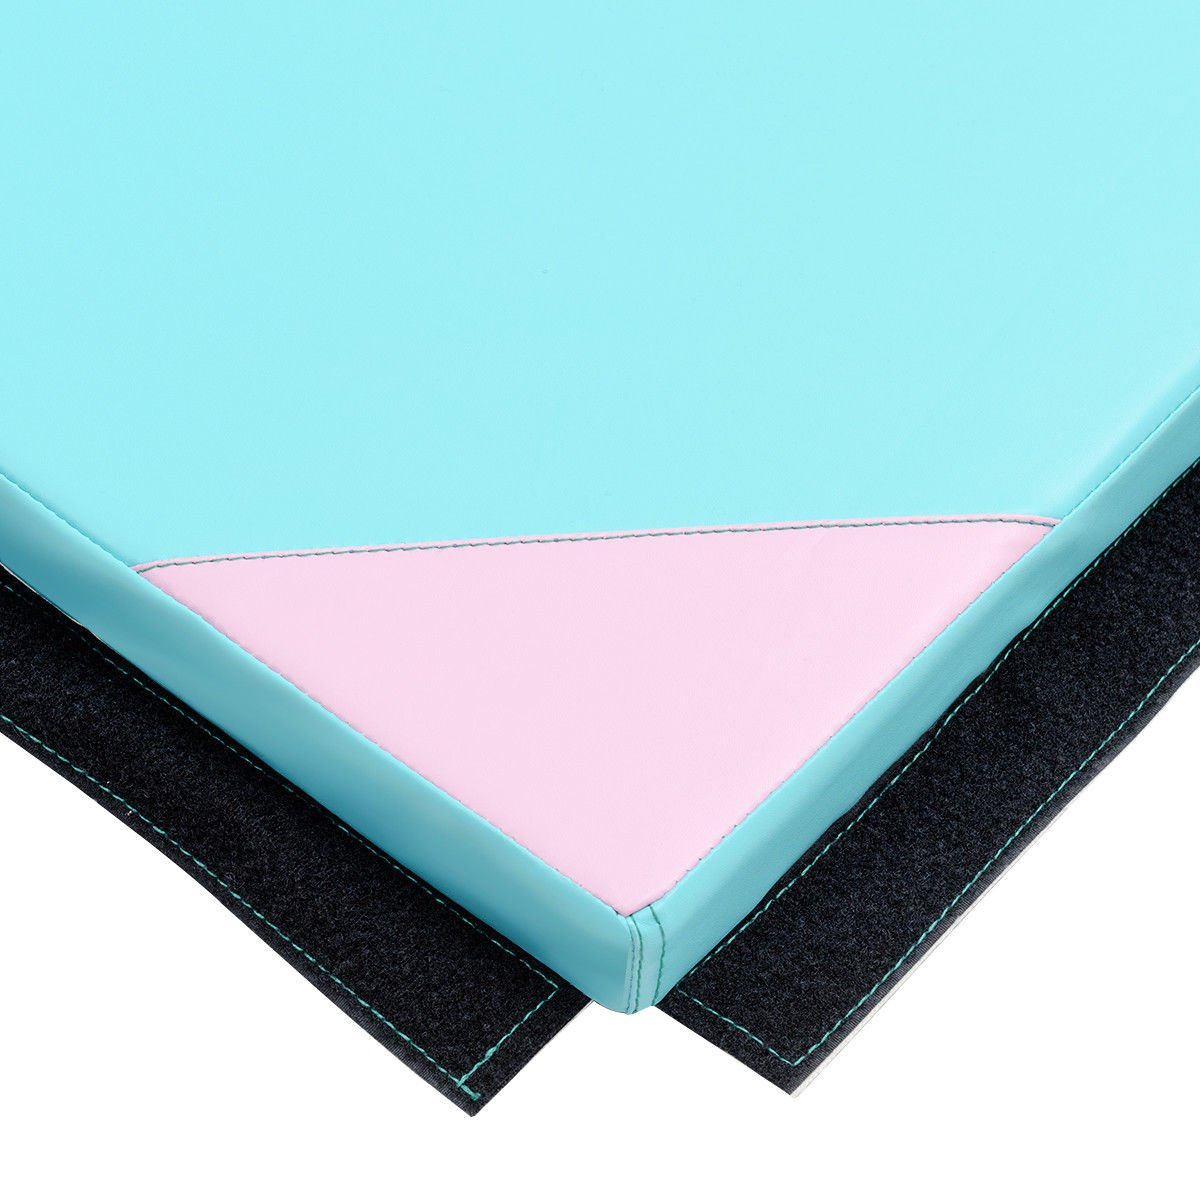 Giantex 4'x10'x2 Gymnastics Mat Thick Folding Panel for Gym Fitness with Hook & Loop Fasteners (Blue/Pink-Small Triangle)